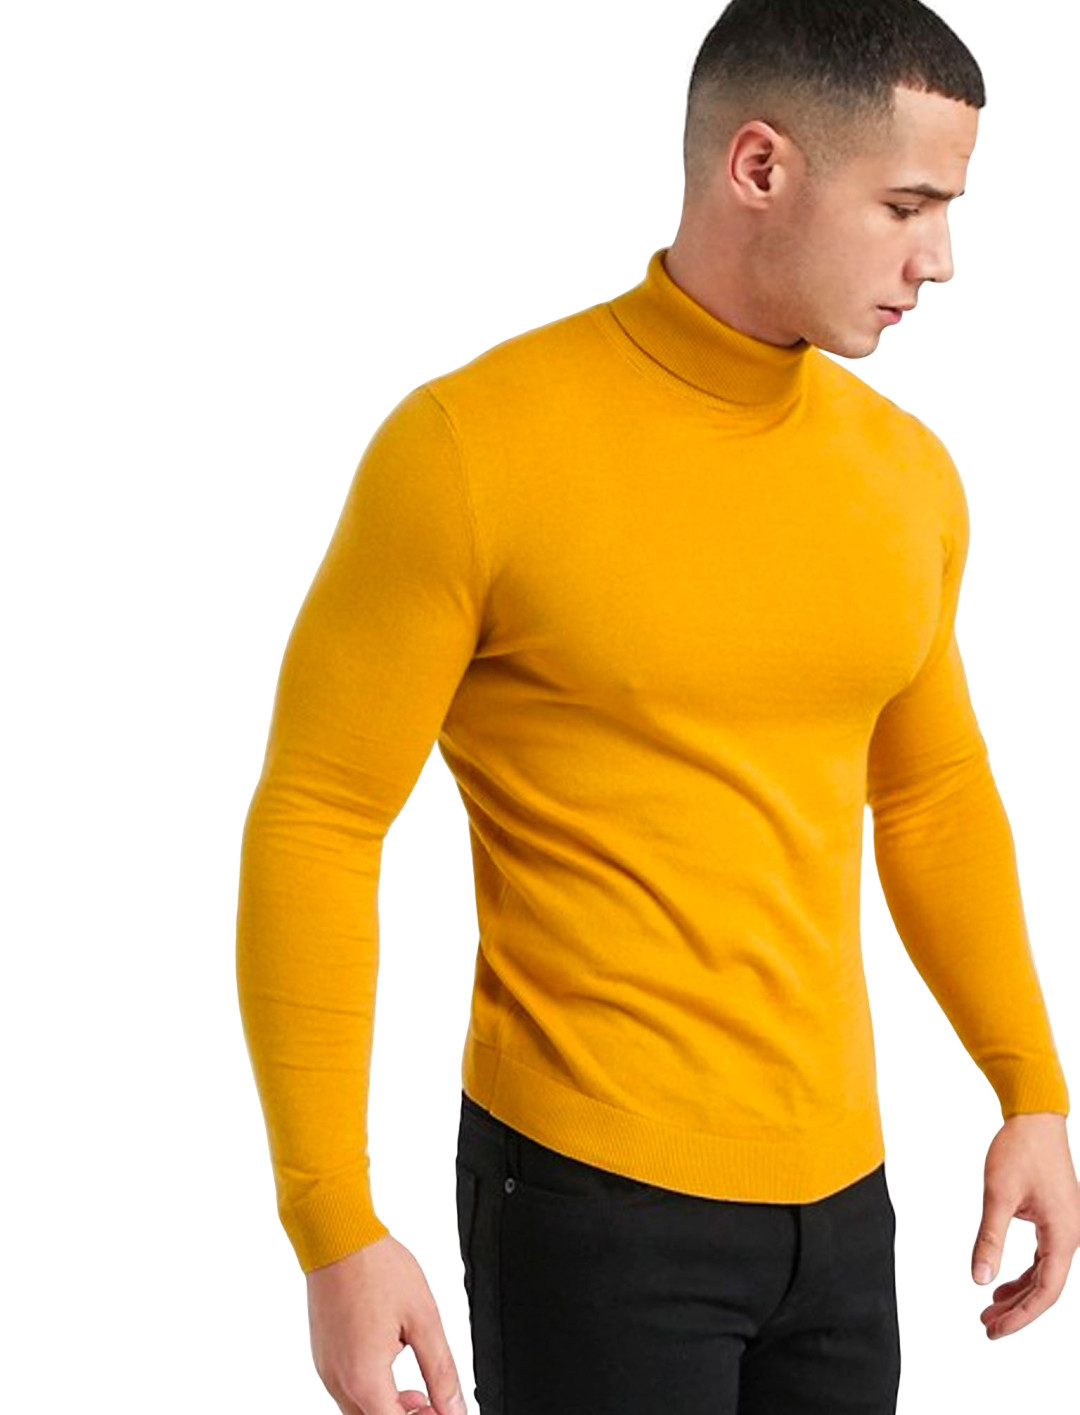 Roll Neck Jumper Clothing